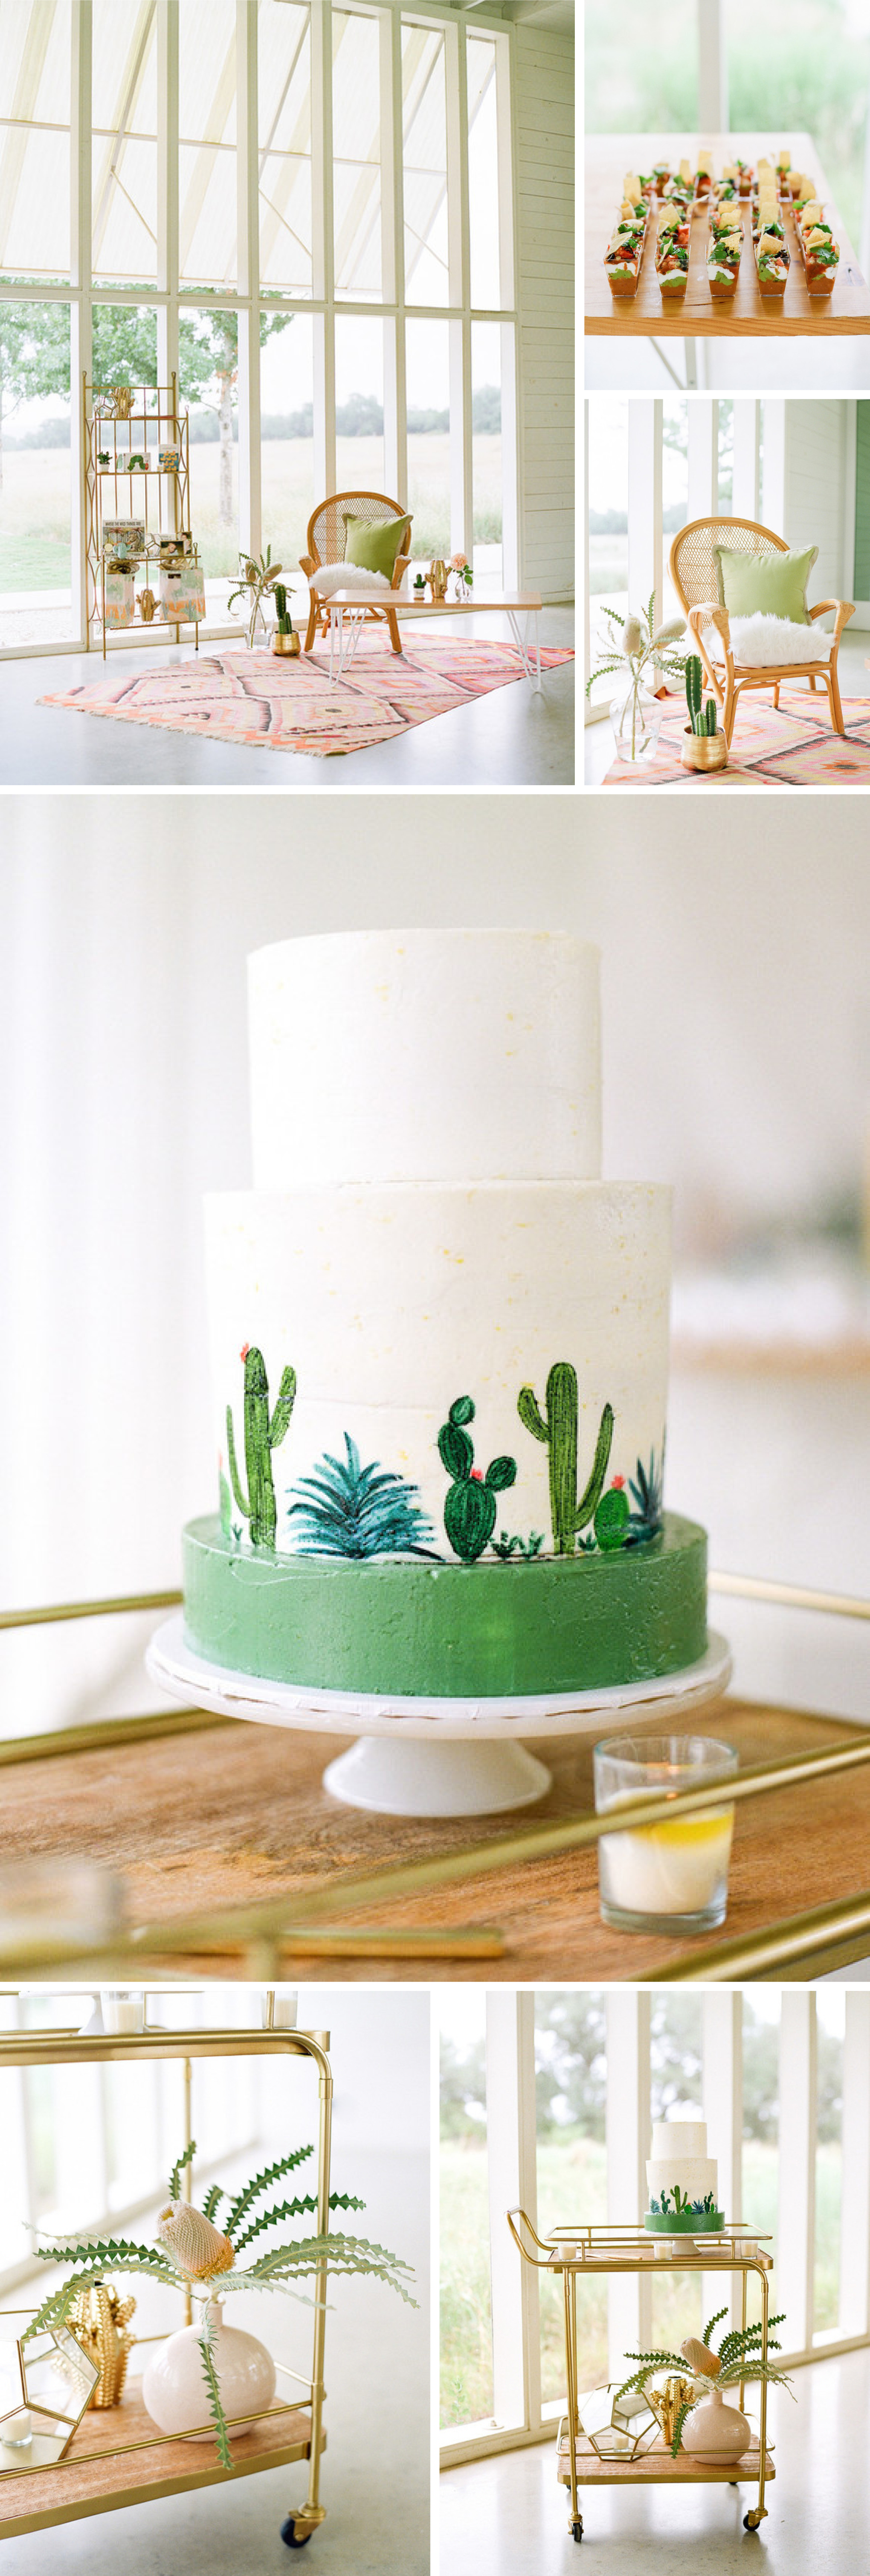 Adorable Cactus-Inspired Baby Shower